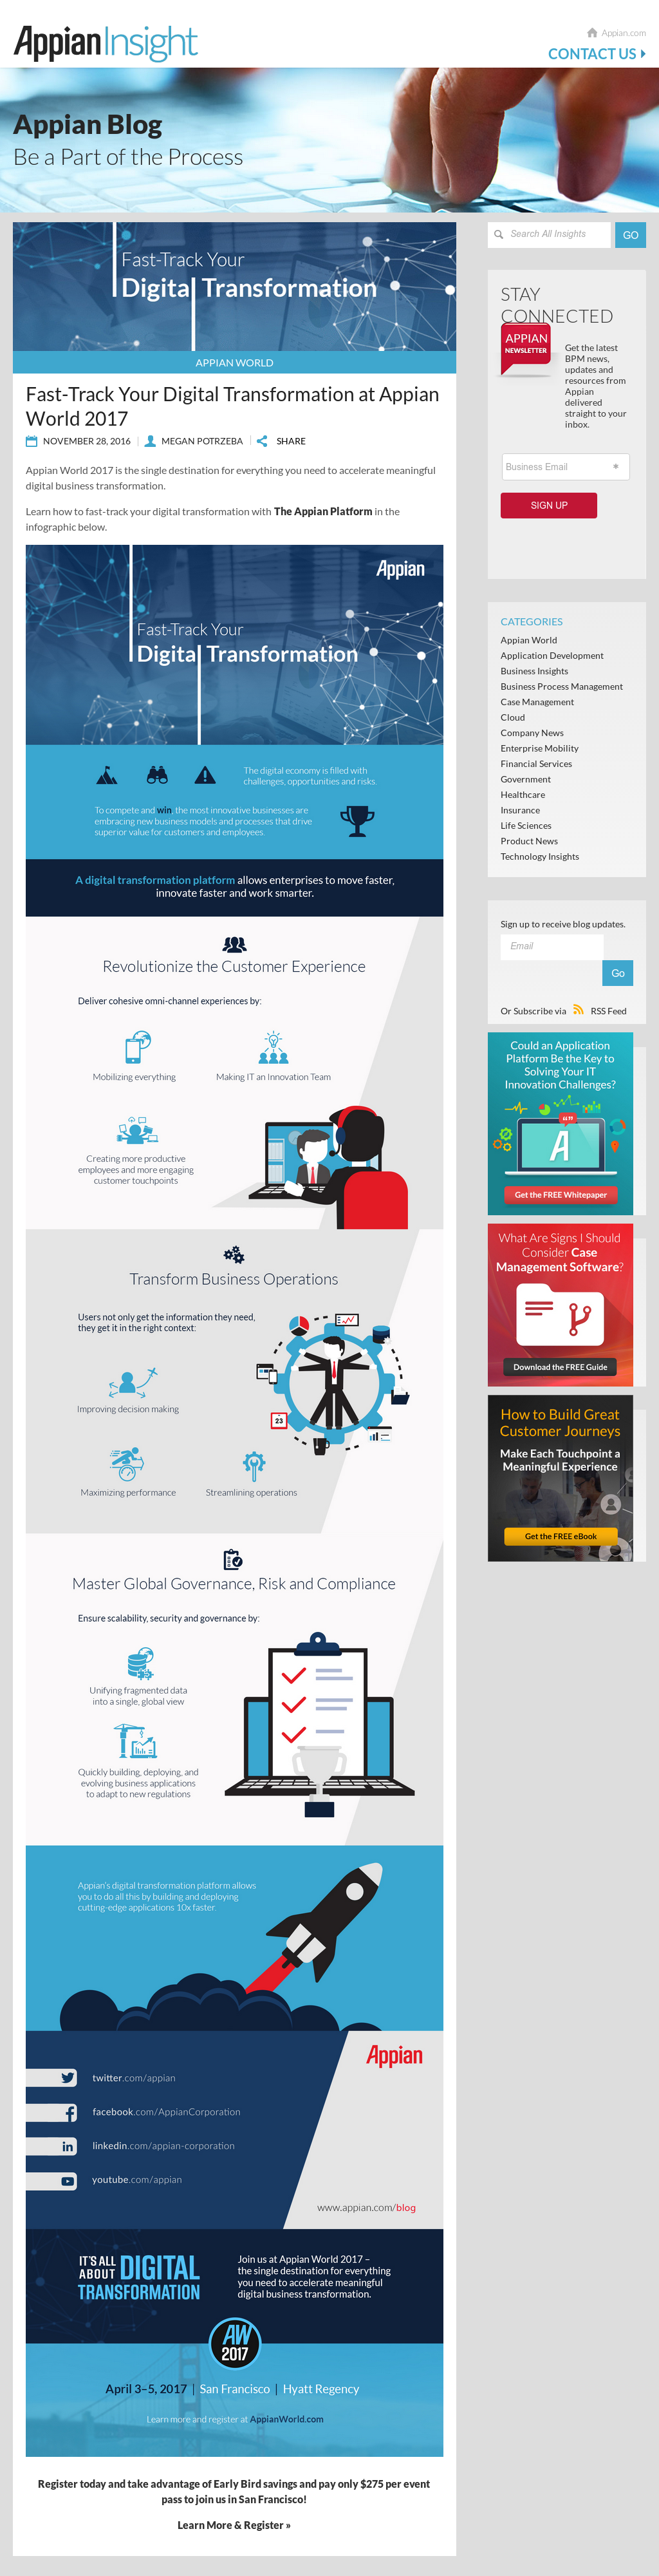 [Infographic] Fast-Track Your Digital Transformation at Appian World 2017